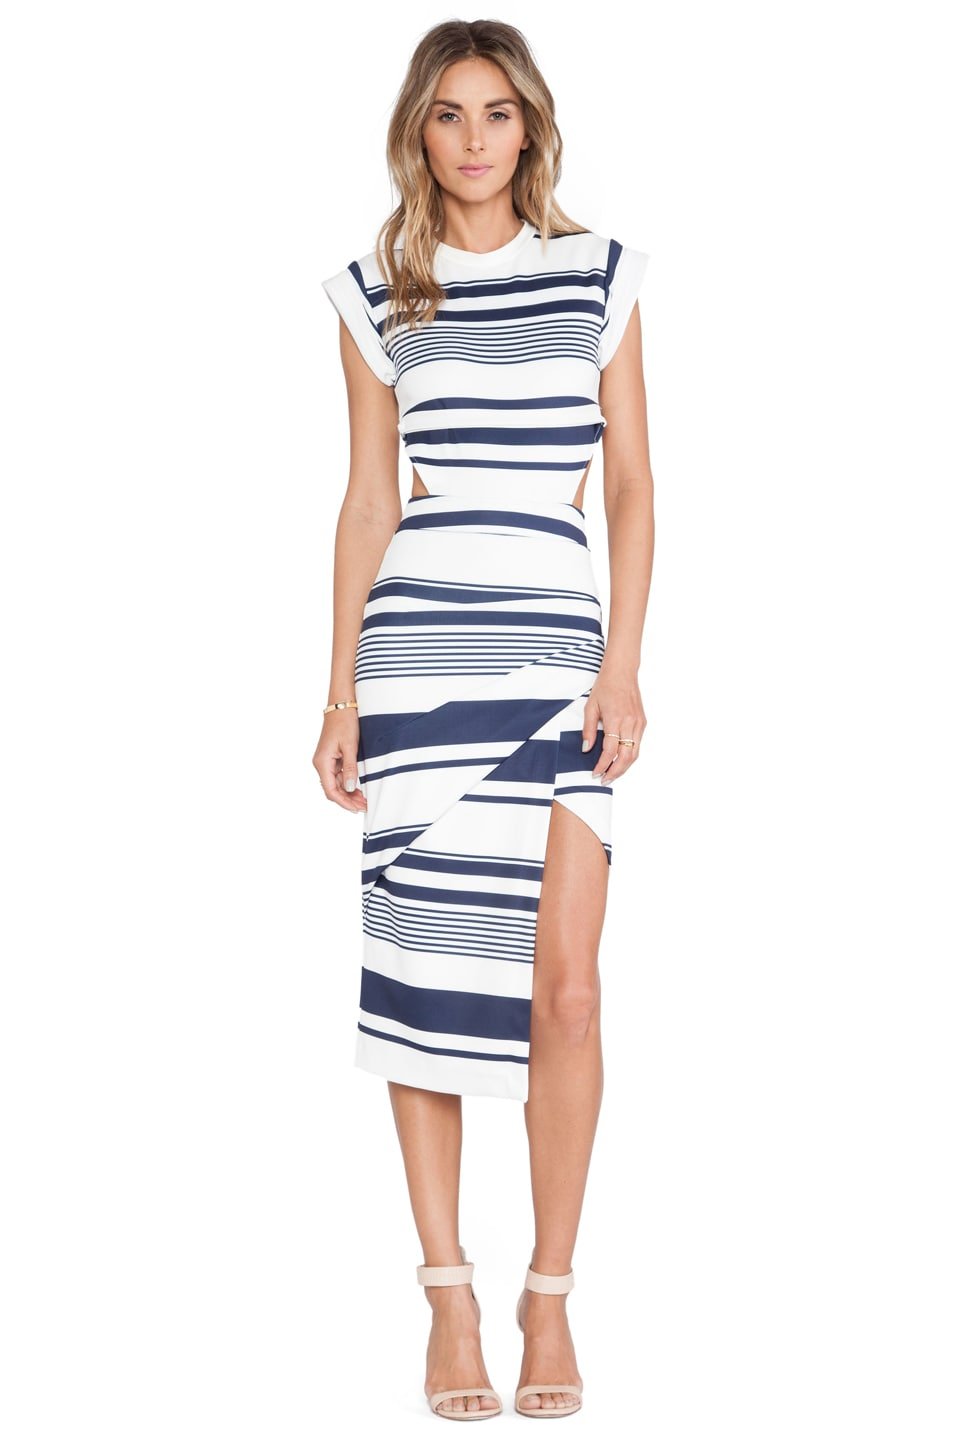 Maurie & Eve Infinite Cage Dress in Quest Print